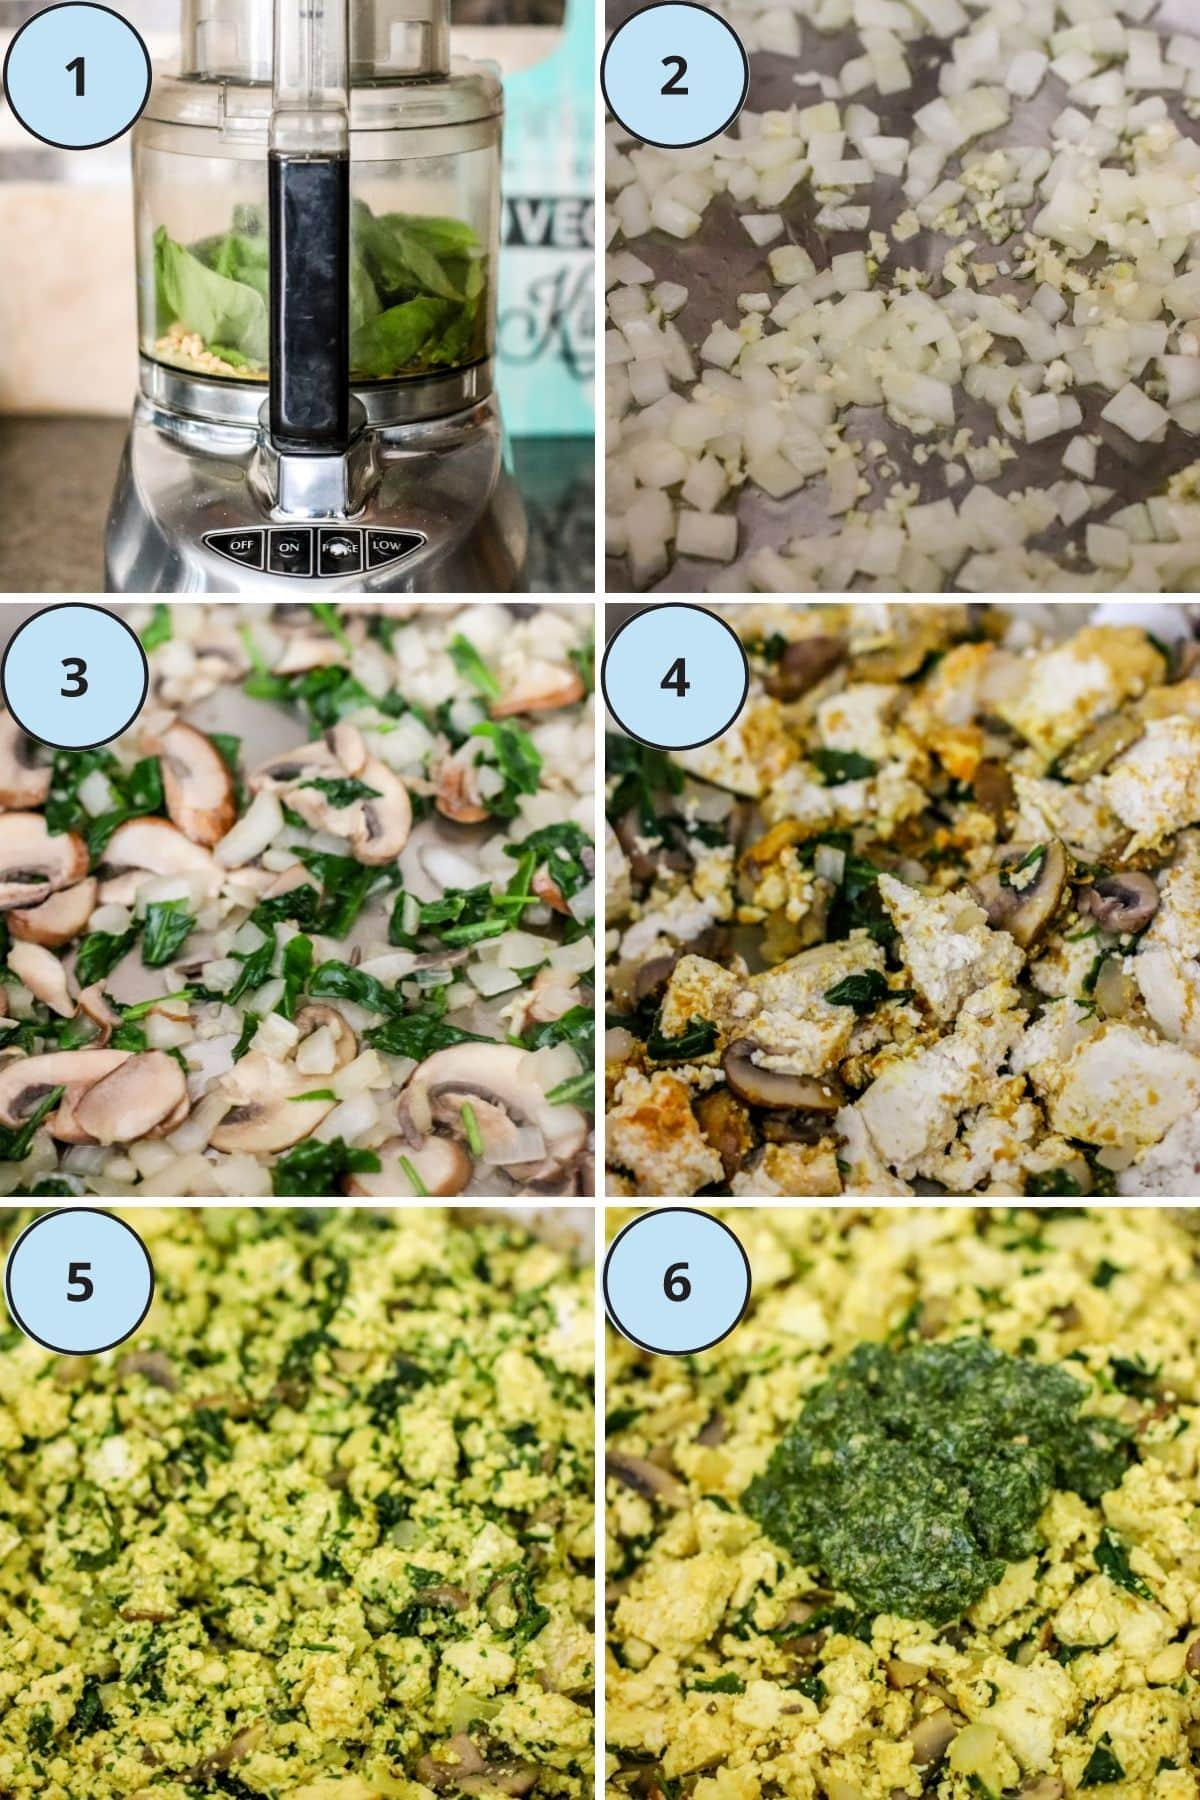 Collage of 6 images showing the steps for making this recipe